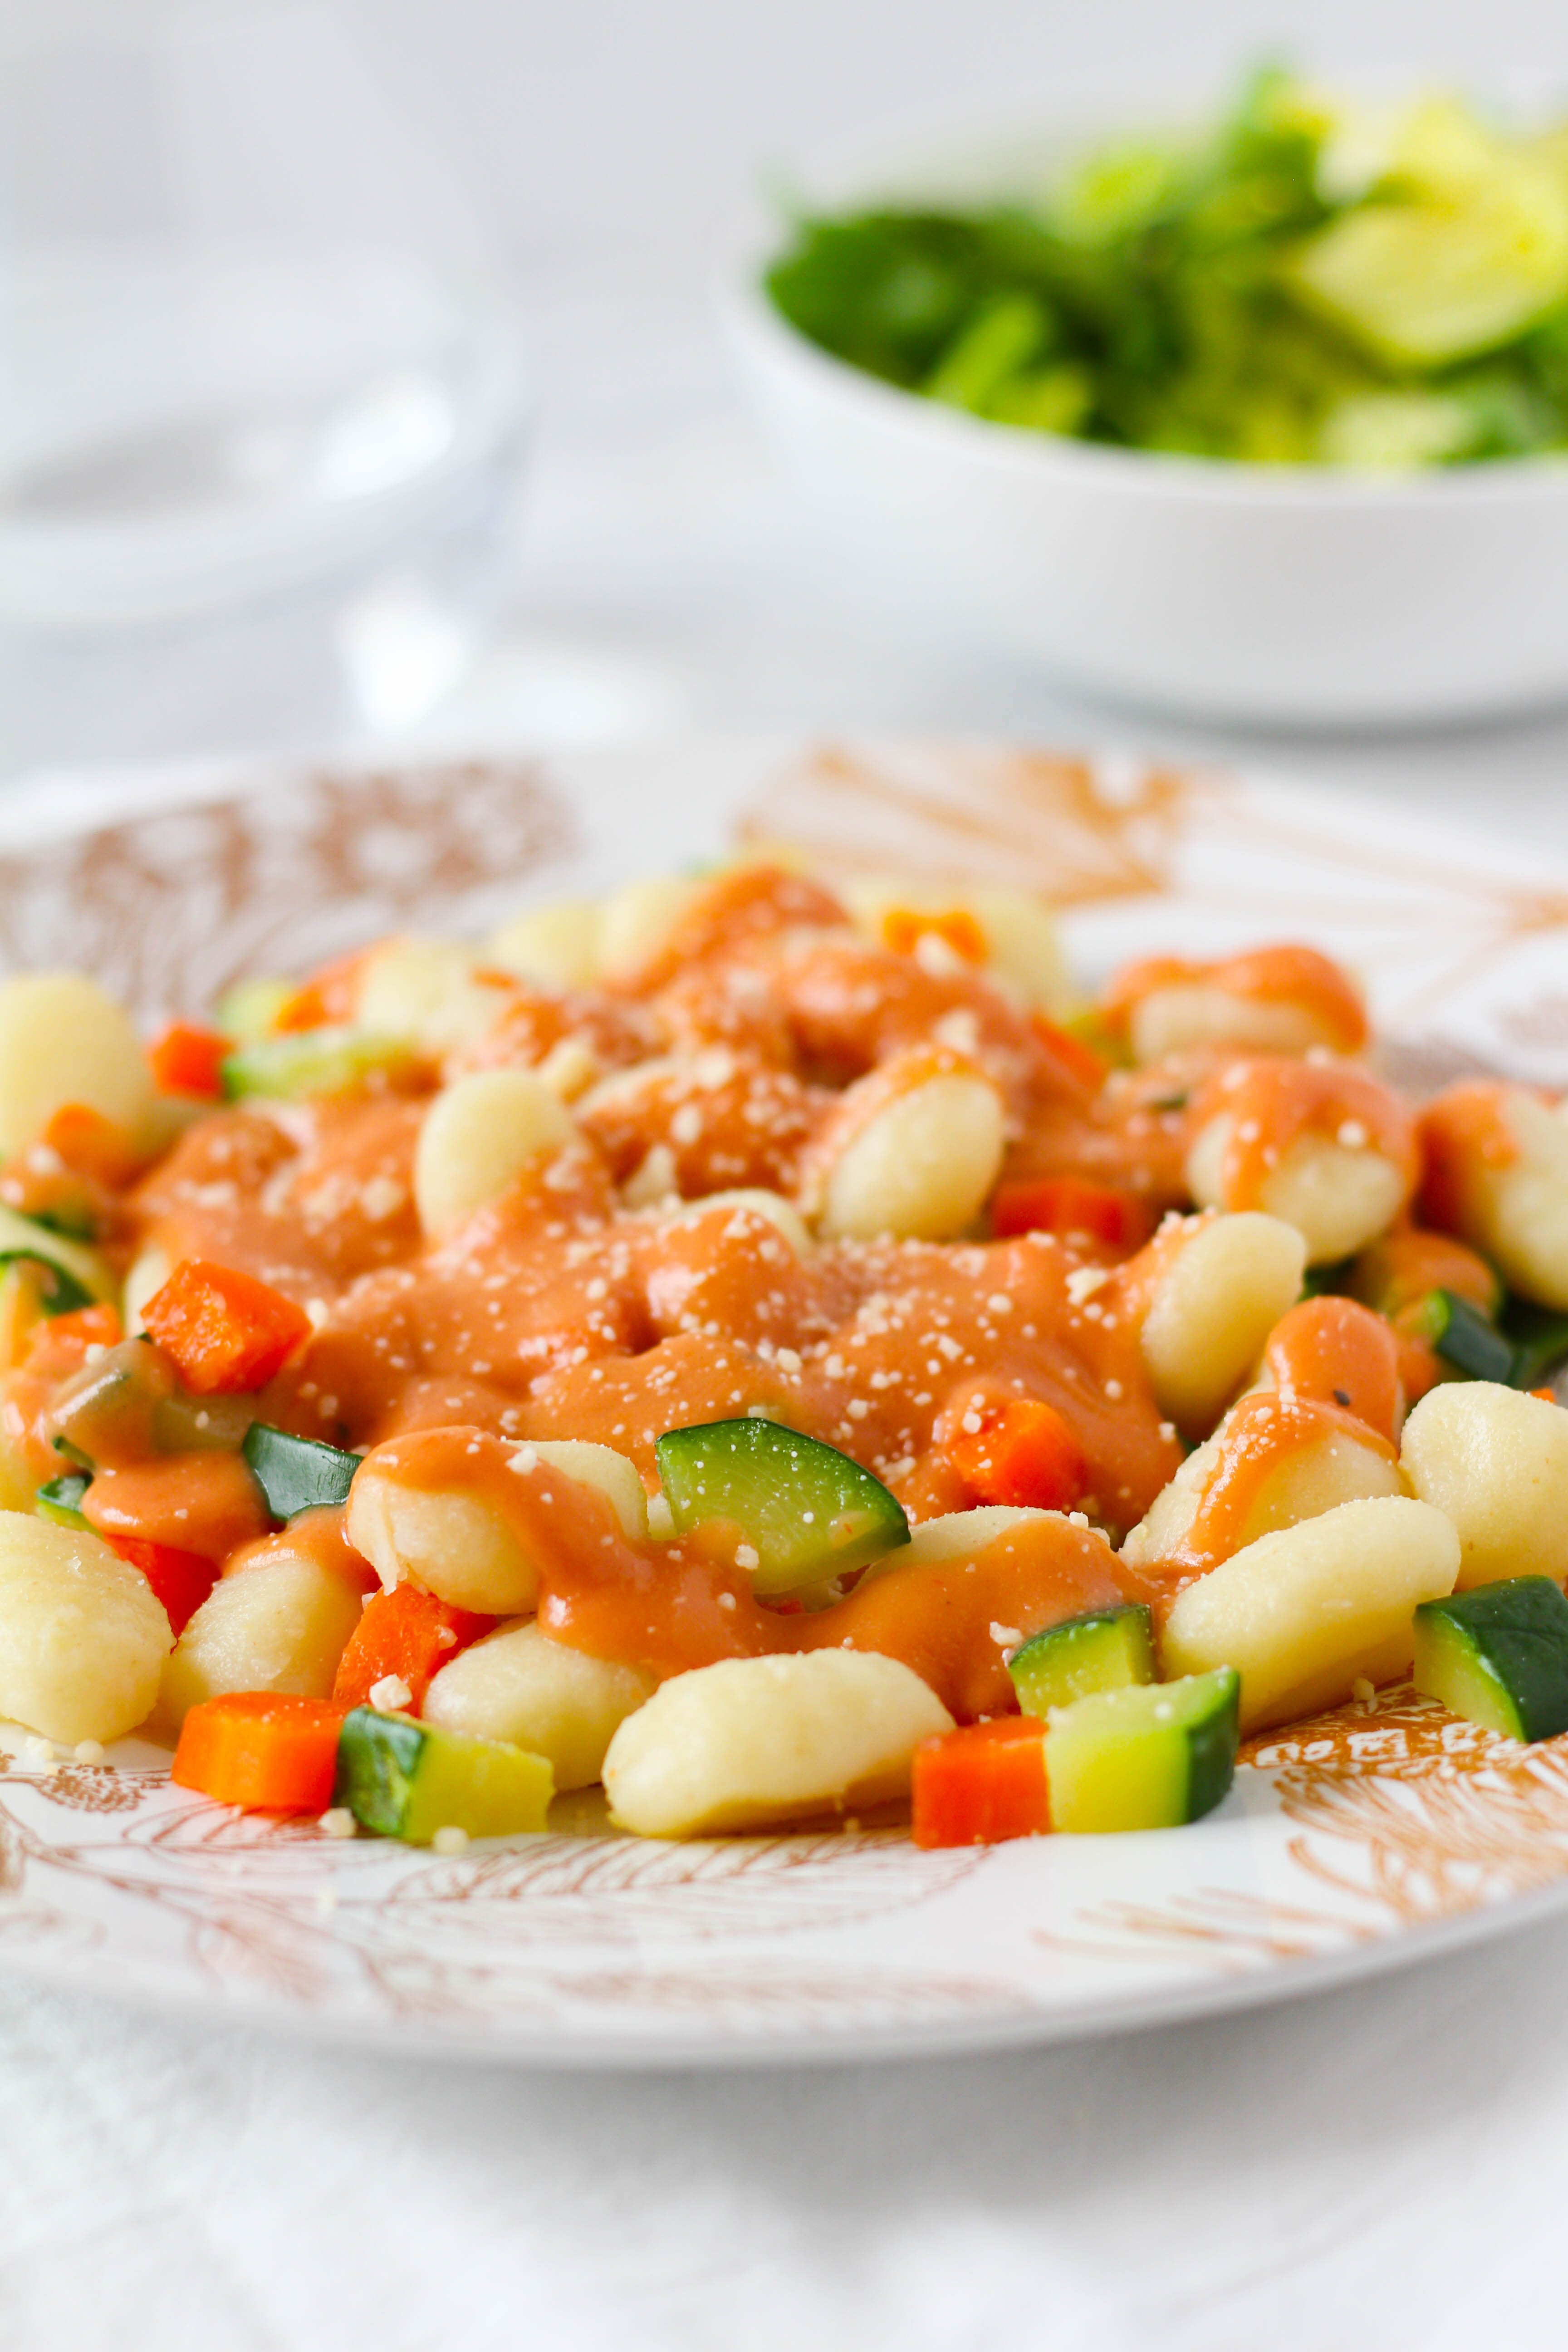 Gnocchi veggies with creamy tomato sauce zen spice for 5 mother sauces of french cuisine